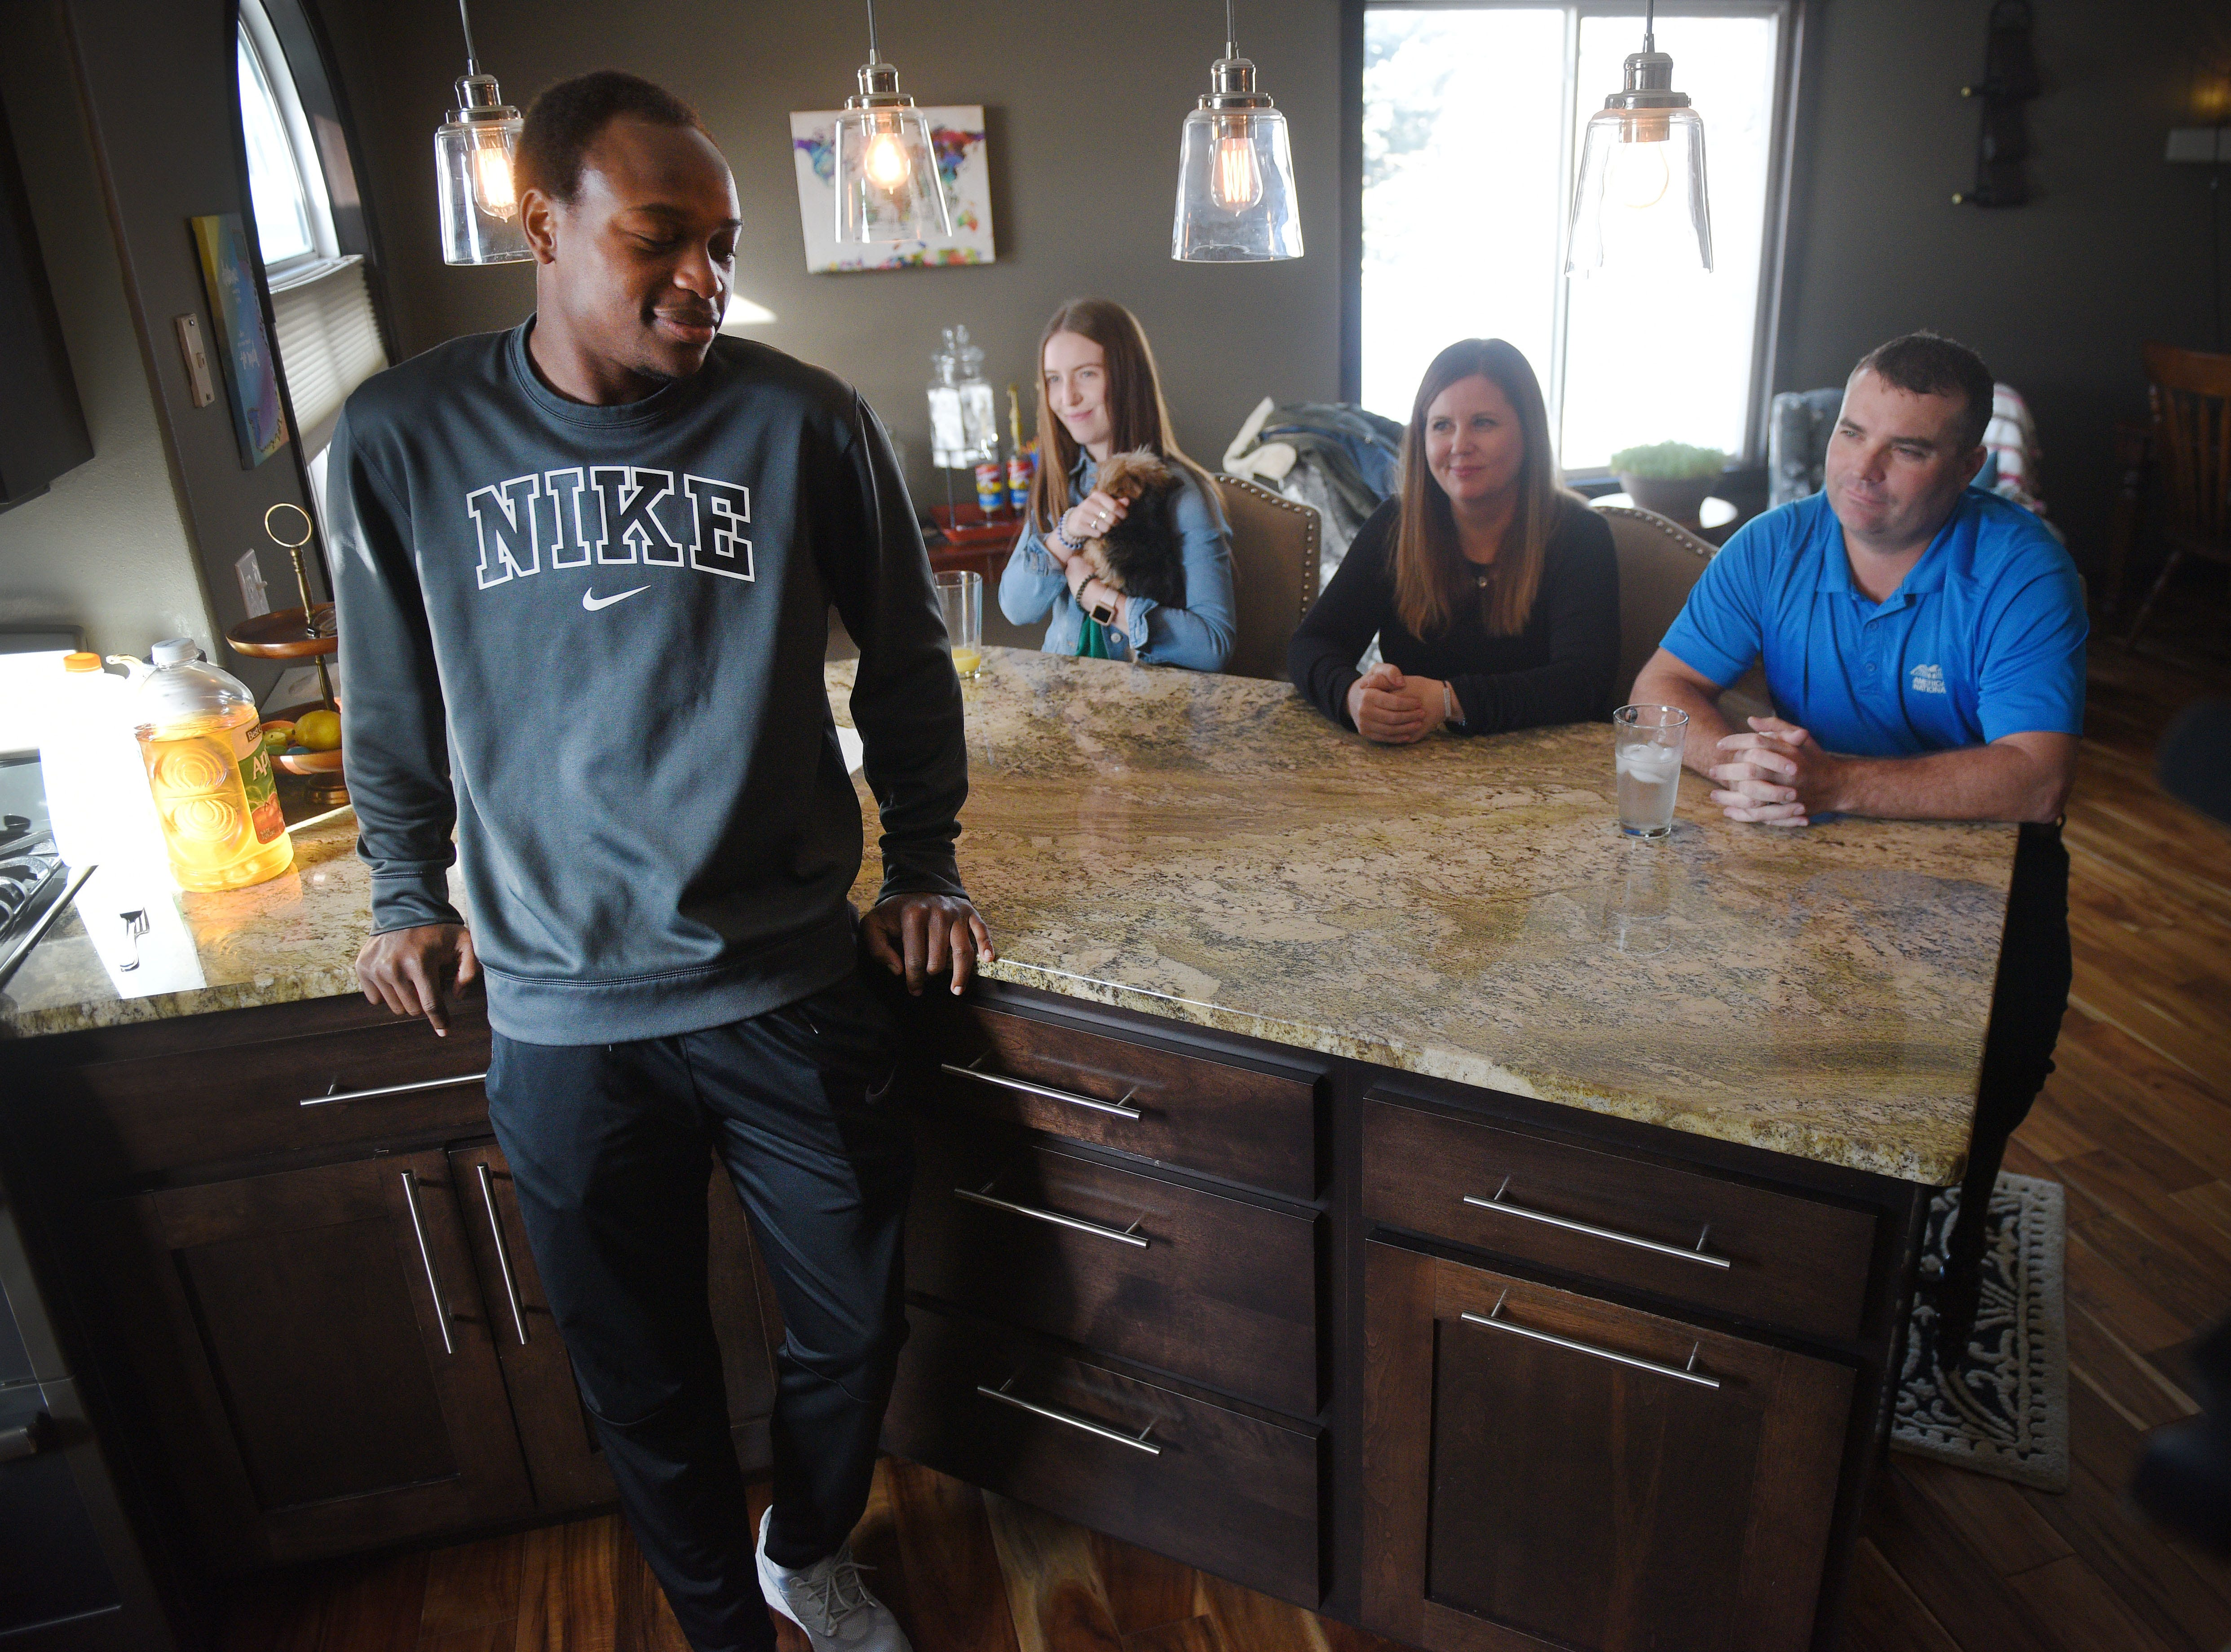 Doyle Brown talks with his guardians Shanley and Mike Dorris and their daughter Karsyn Wednesday, Jan. 16., after lunch at their home in Madison.